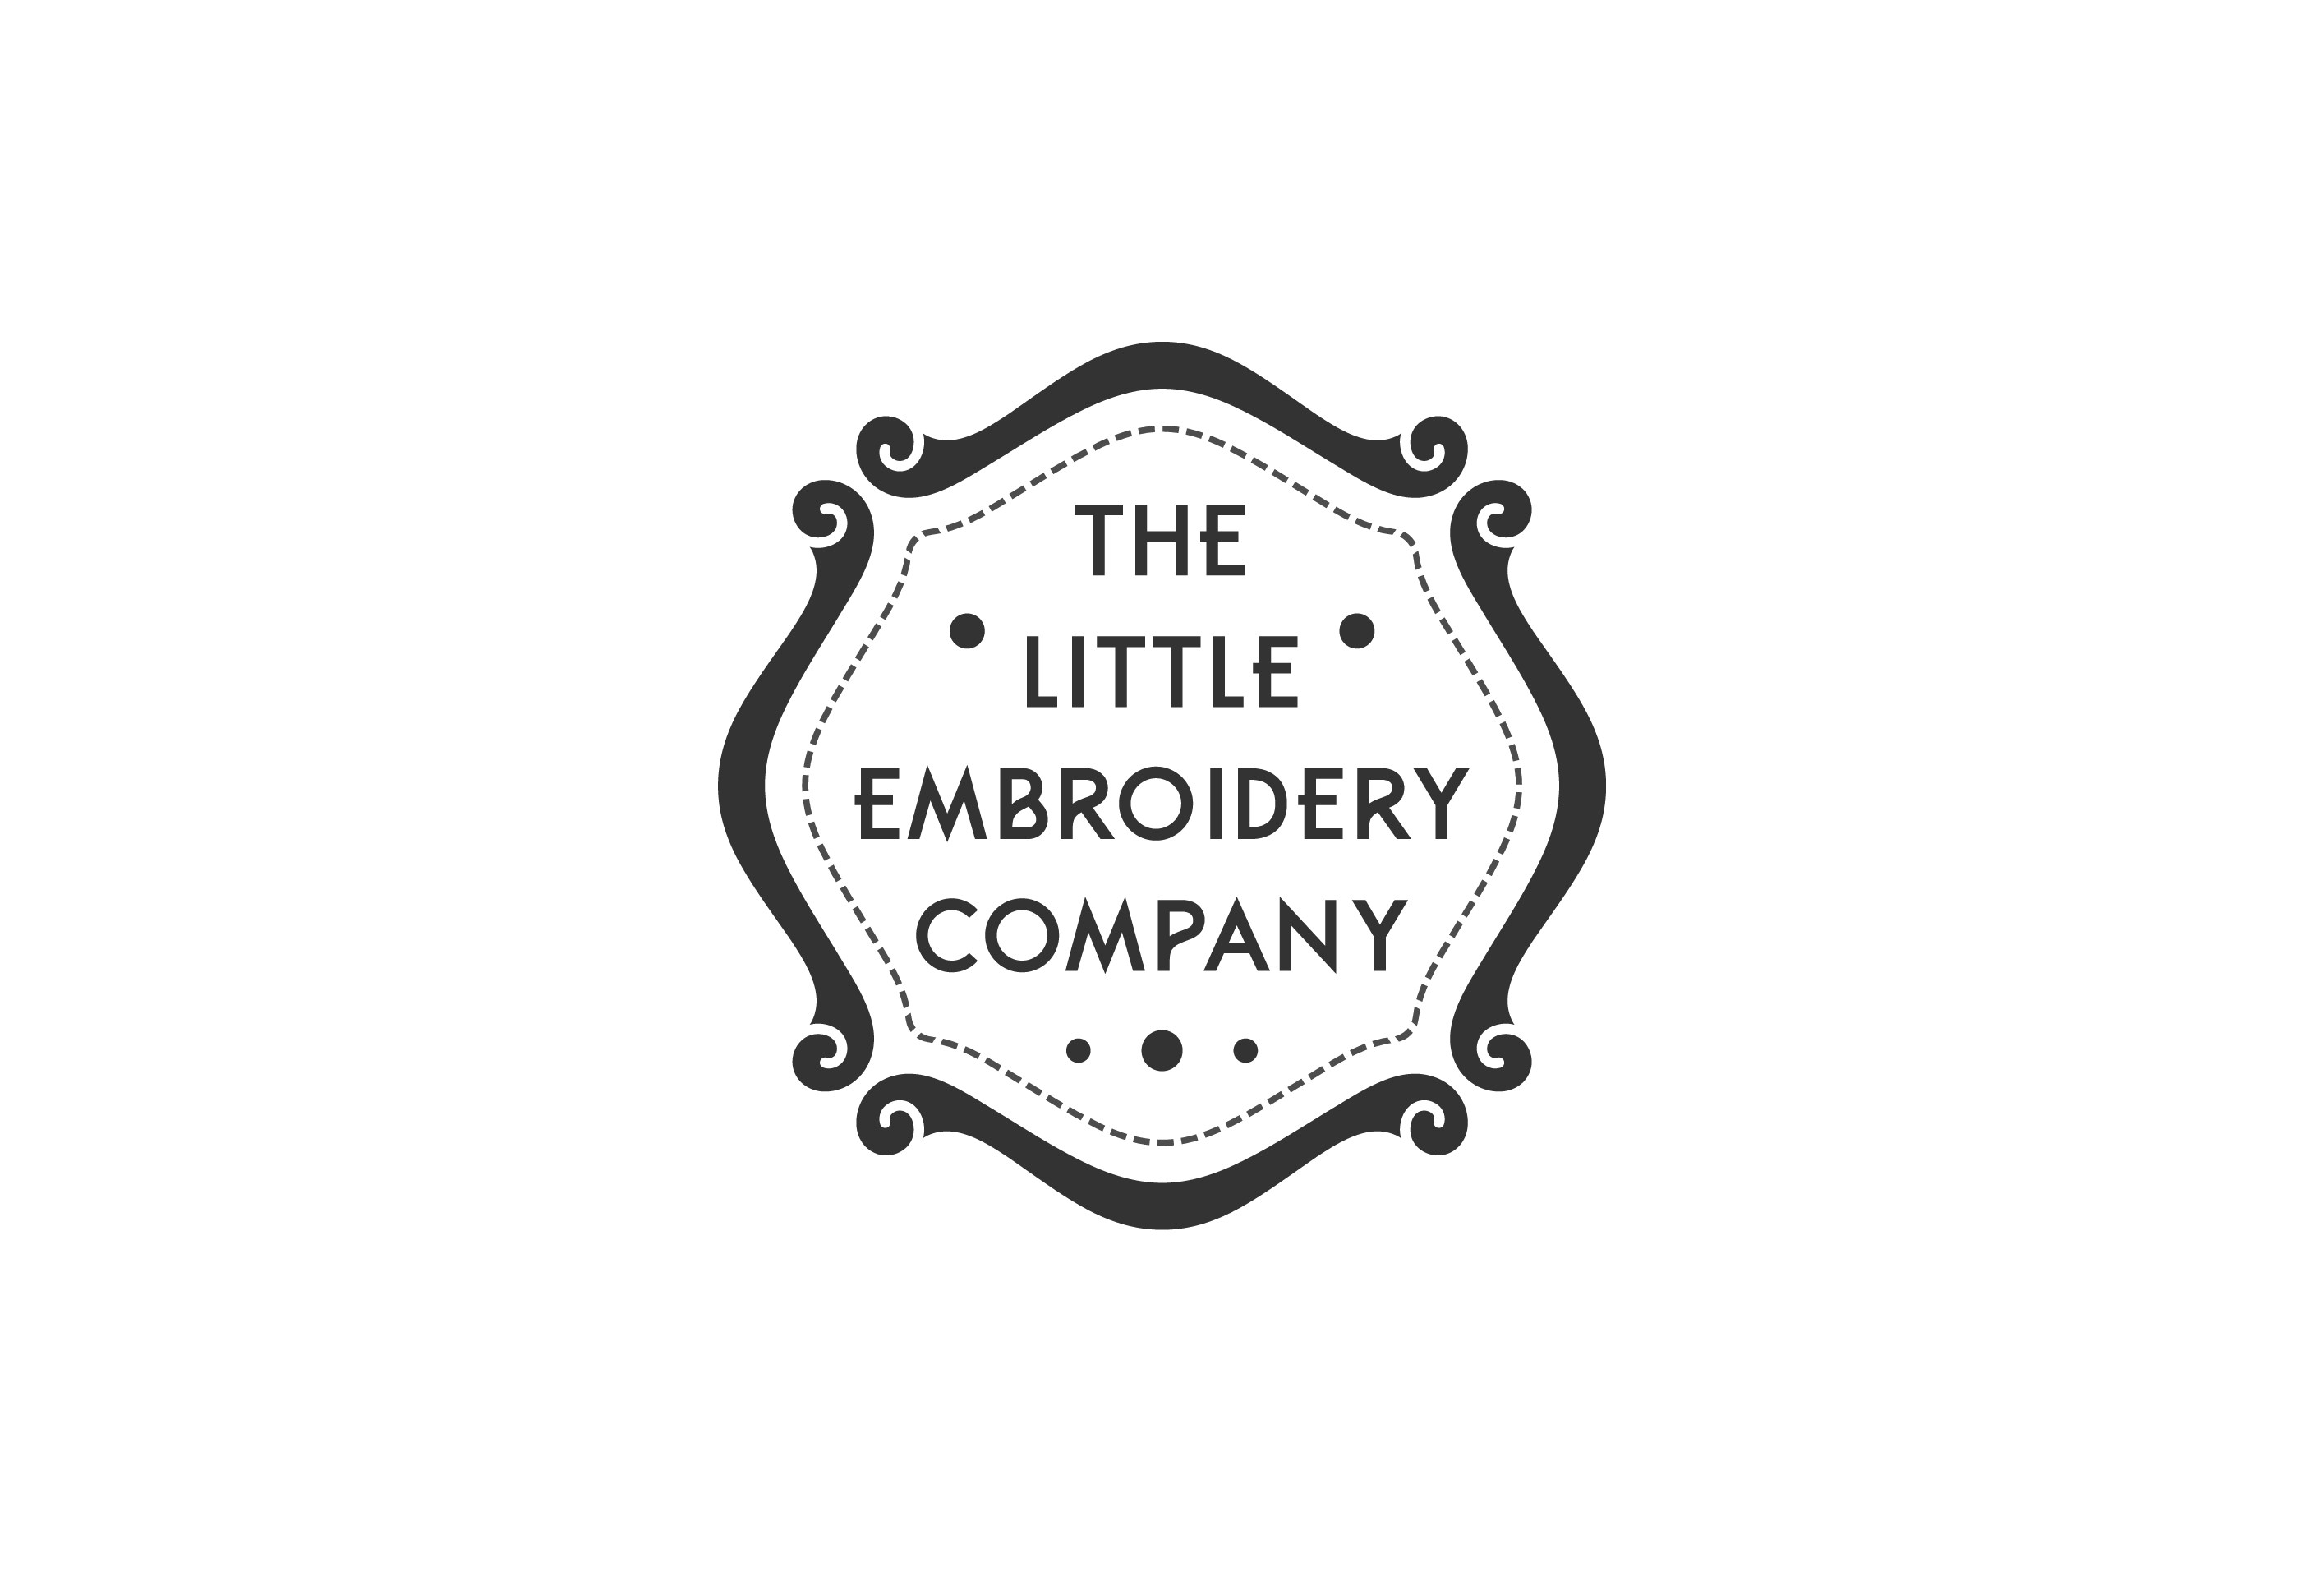 The Little Embroidery Company